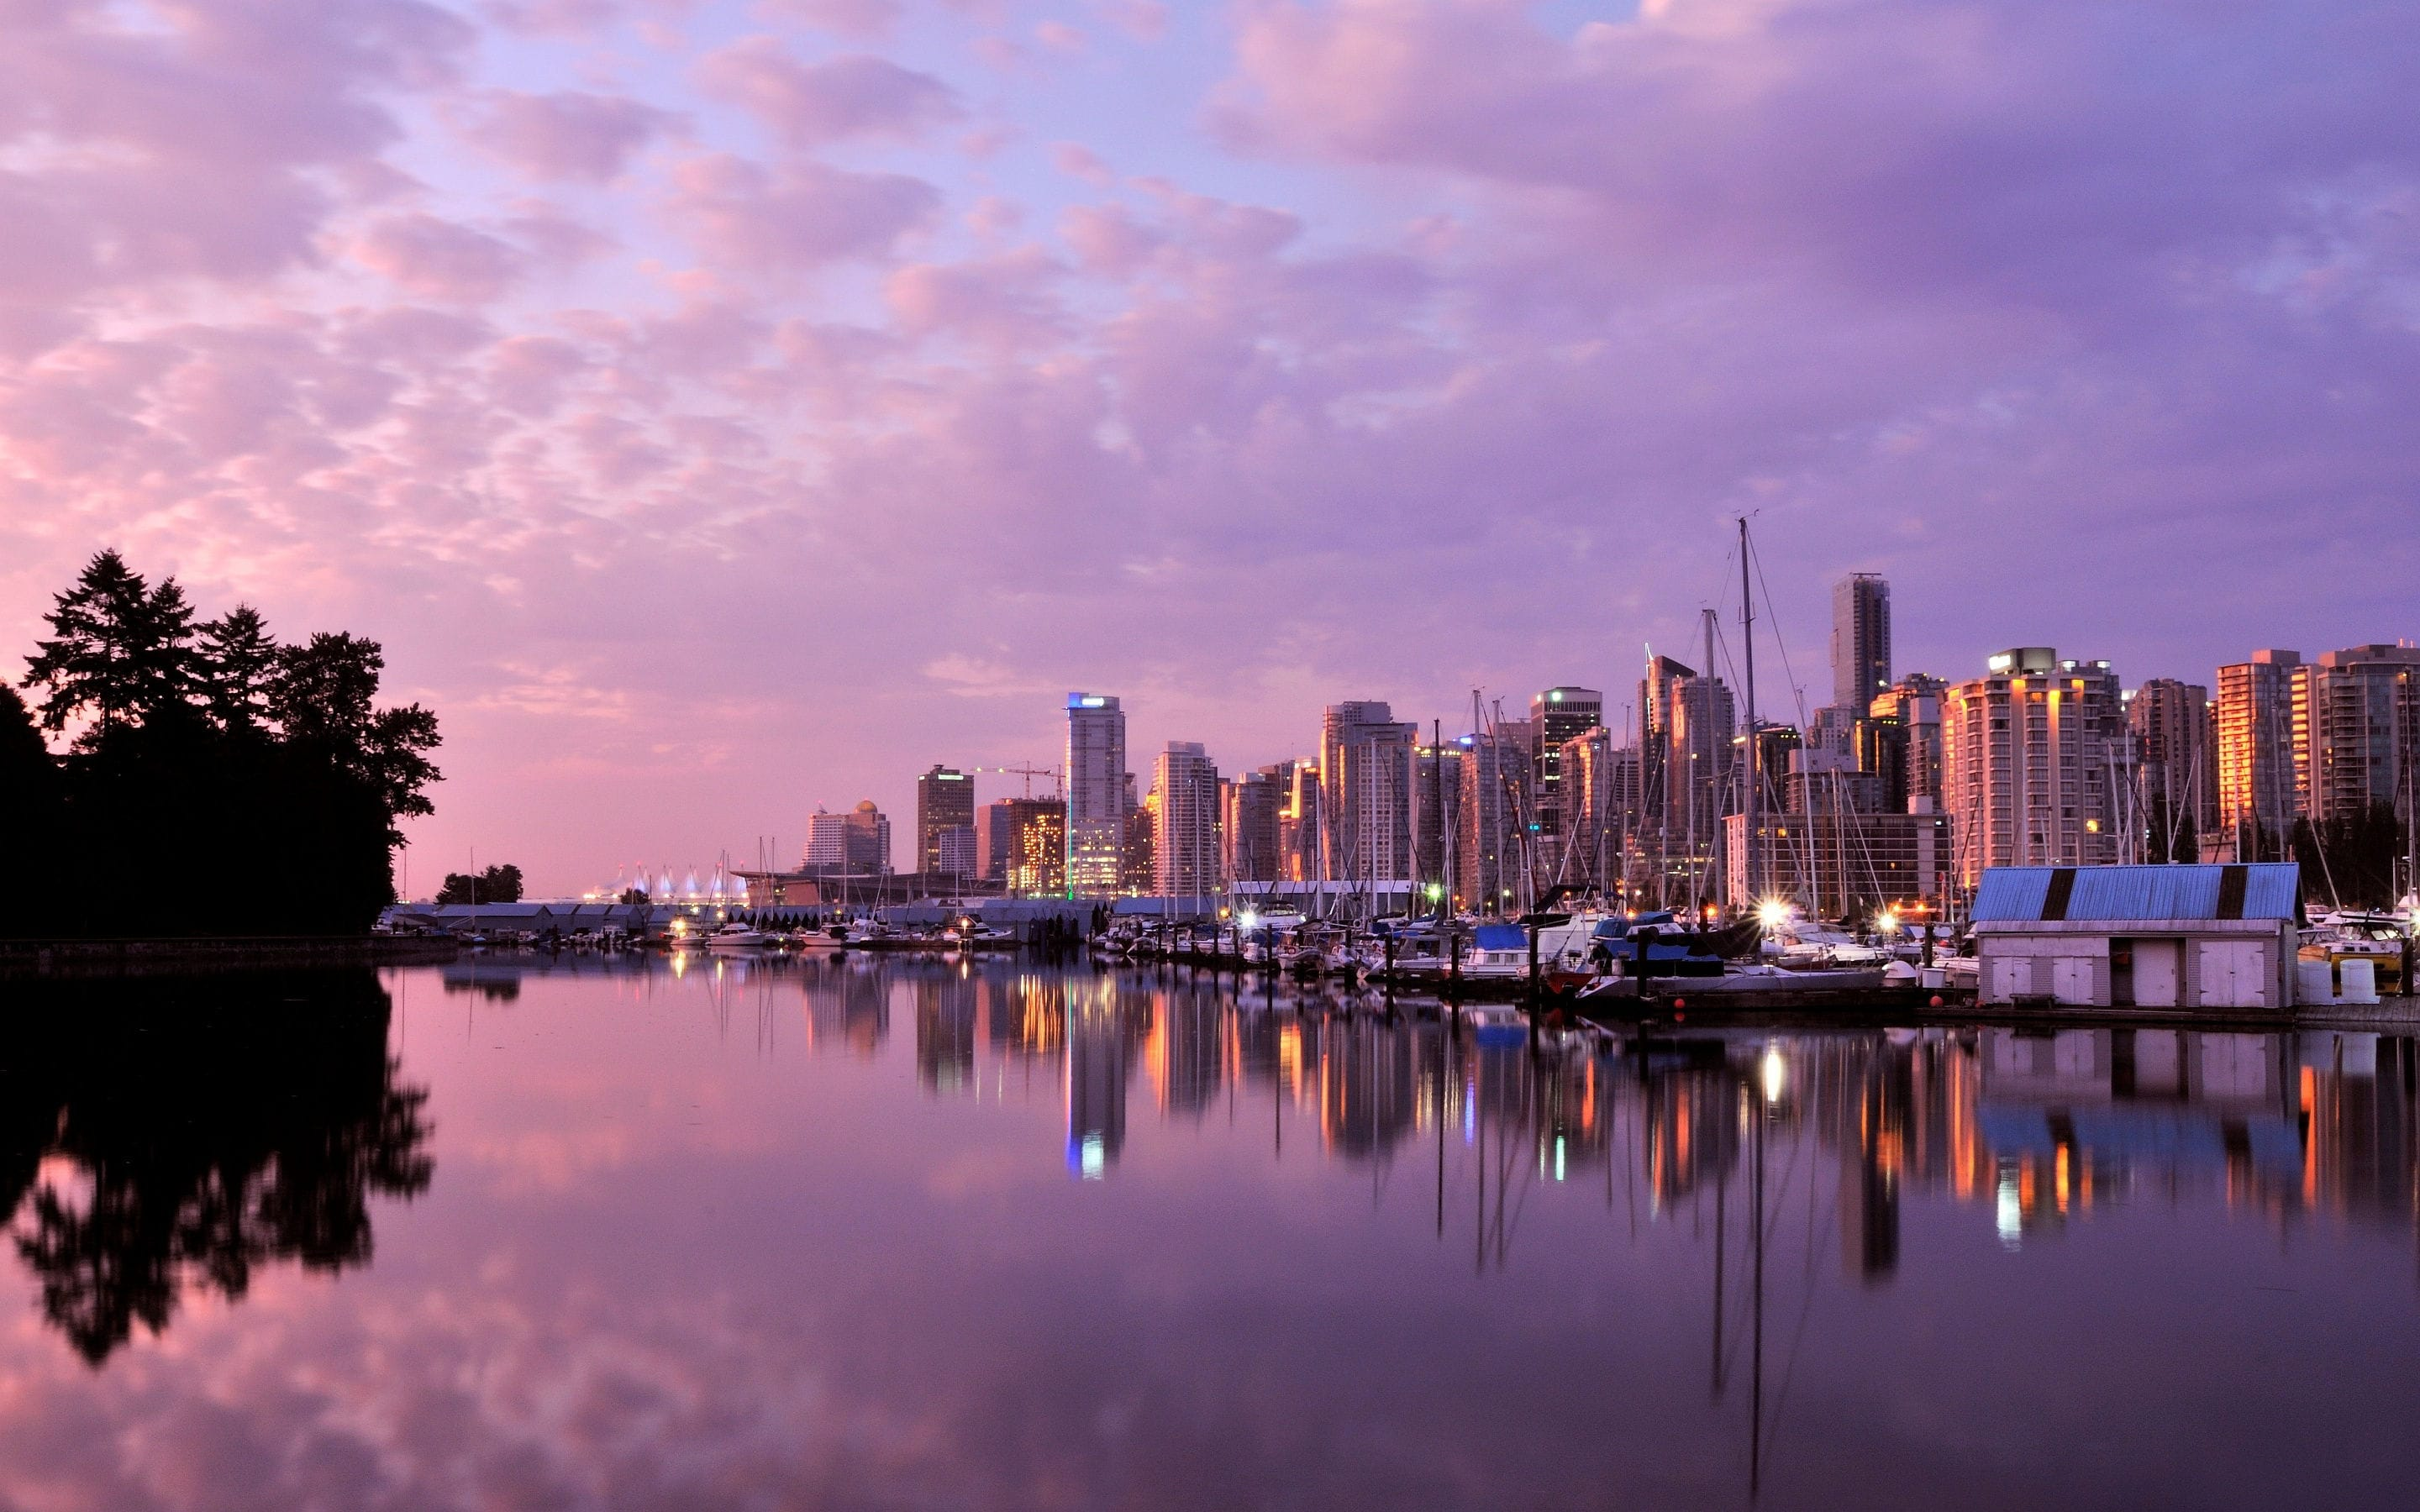 Vancouver HD Wallpapers 7wallpapersnet 2880x1800